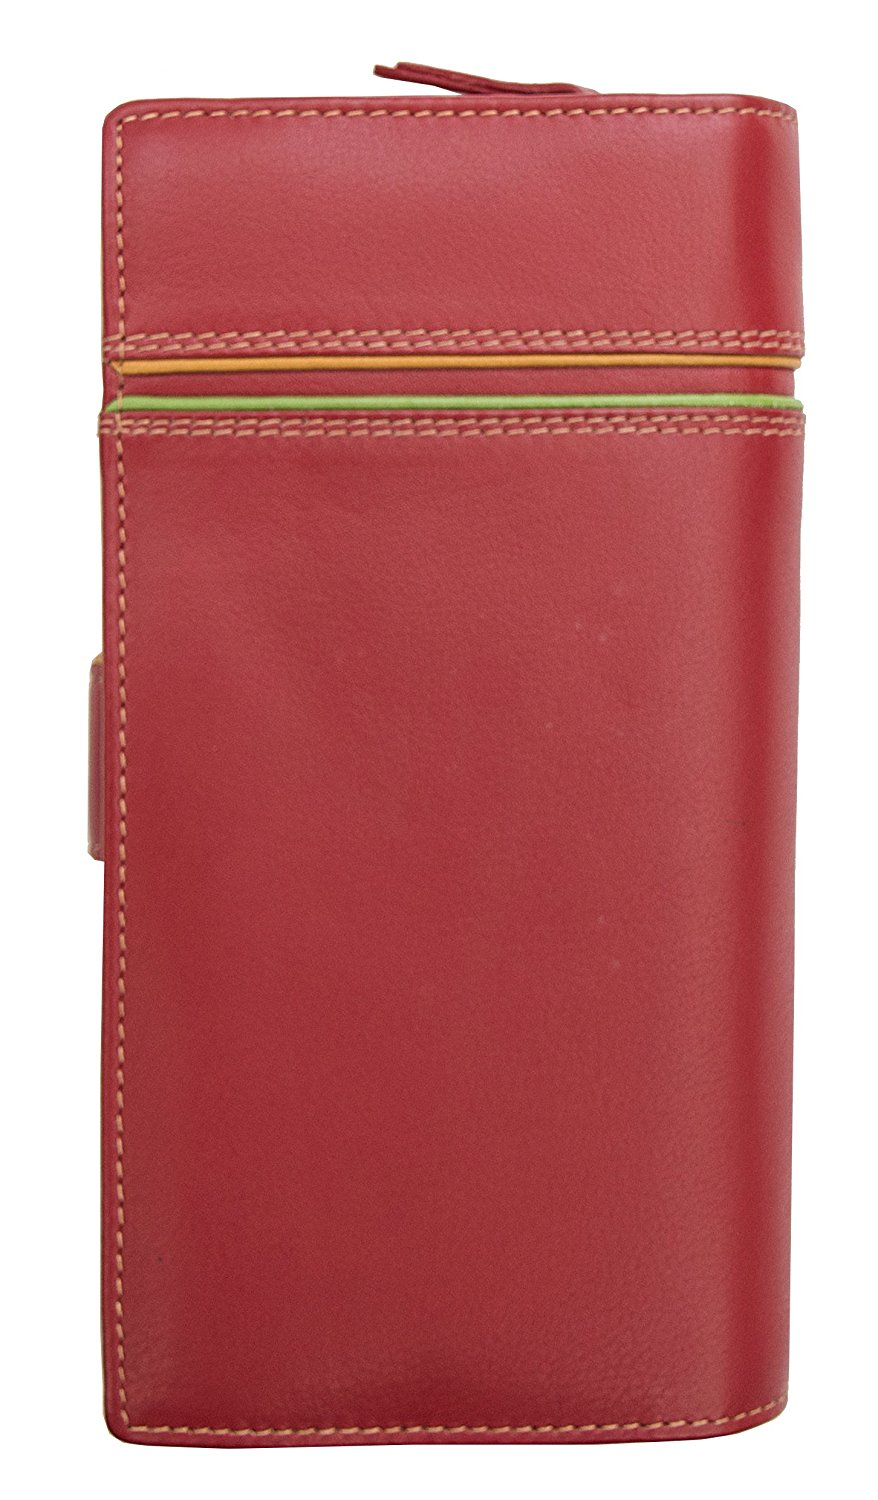 Femmes-Extra-Large-en-Cuir-Veritable-RFID-Bloquant-Organisateur-Clutch-Wallet-purse miniature 25